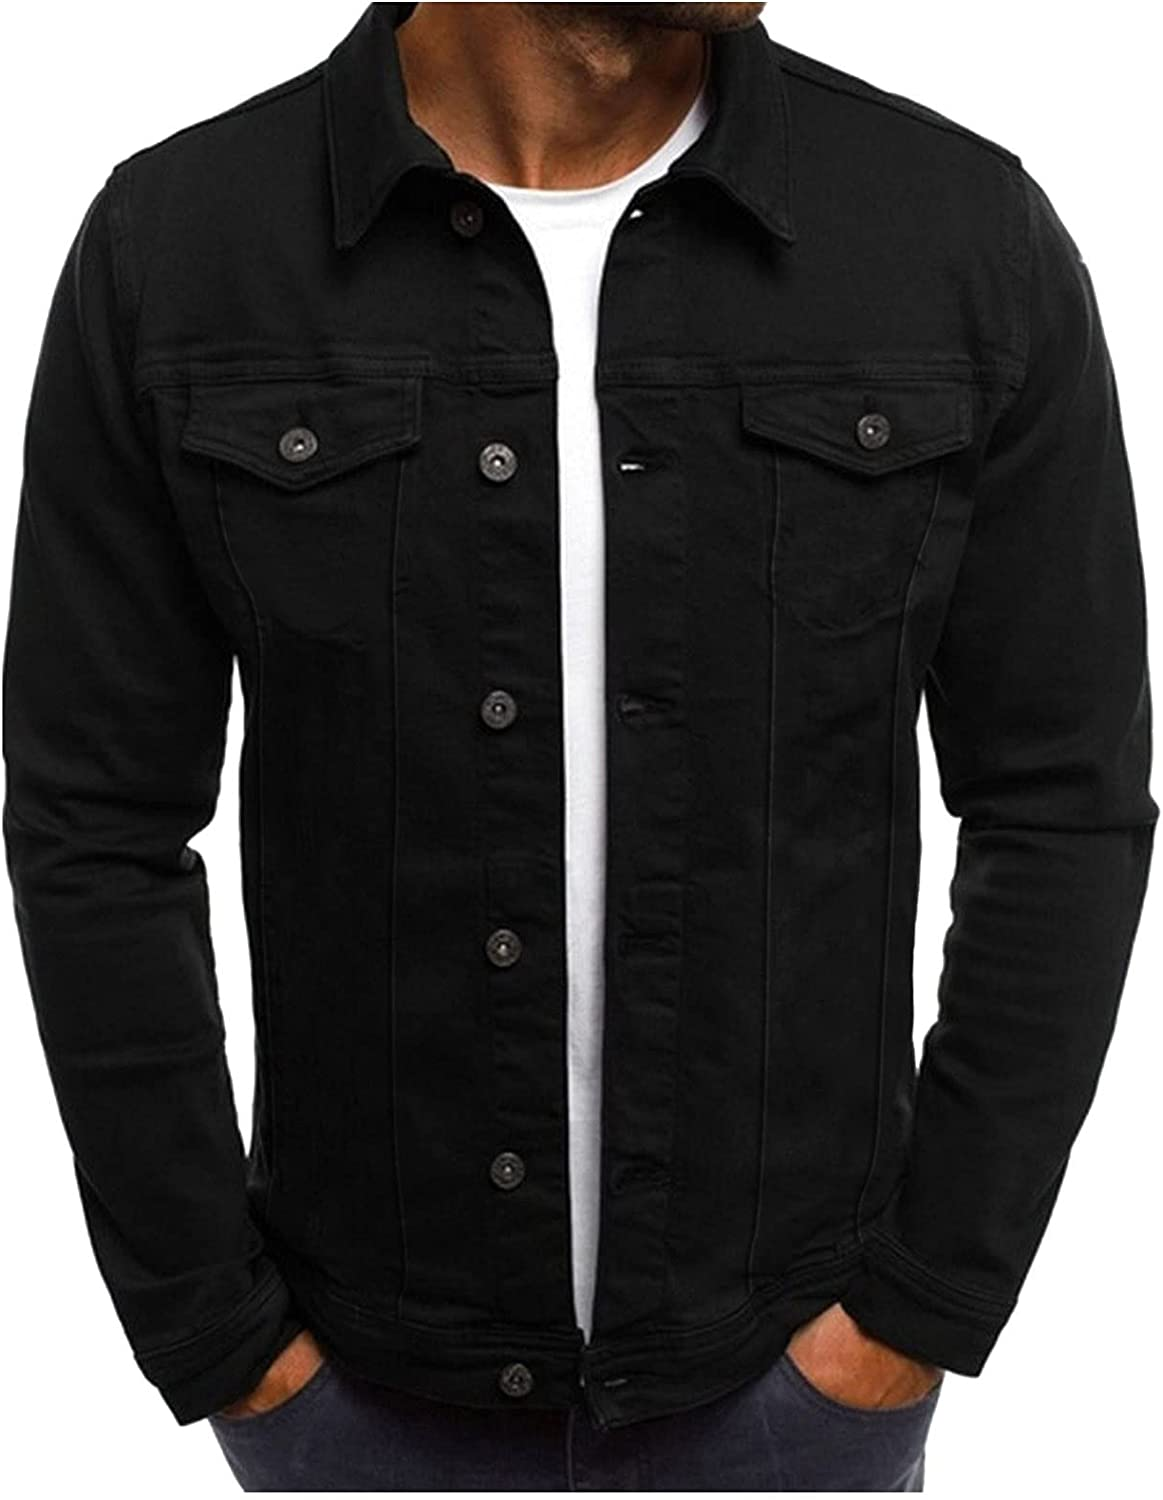 XXBR Lightweight Military Shirts for Mens, Fall Button Down Work Shirts Outdoor Hiking Casual Outerwear with Pockets